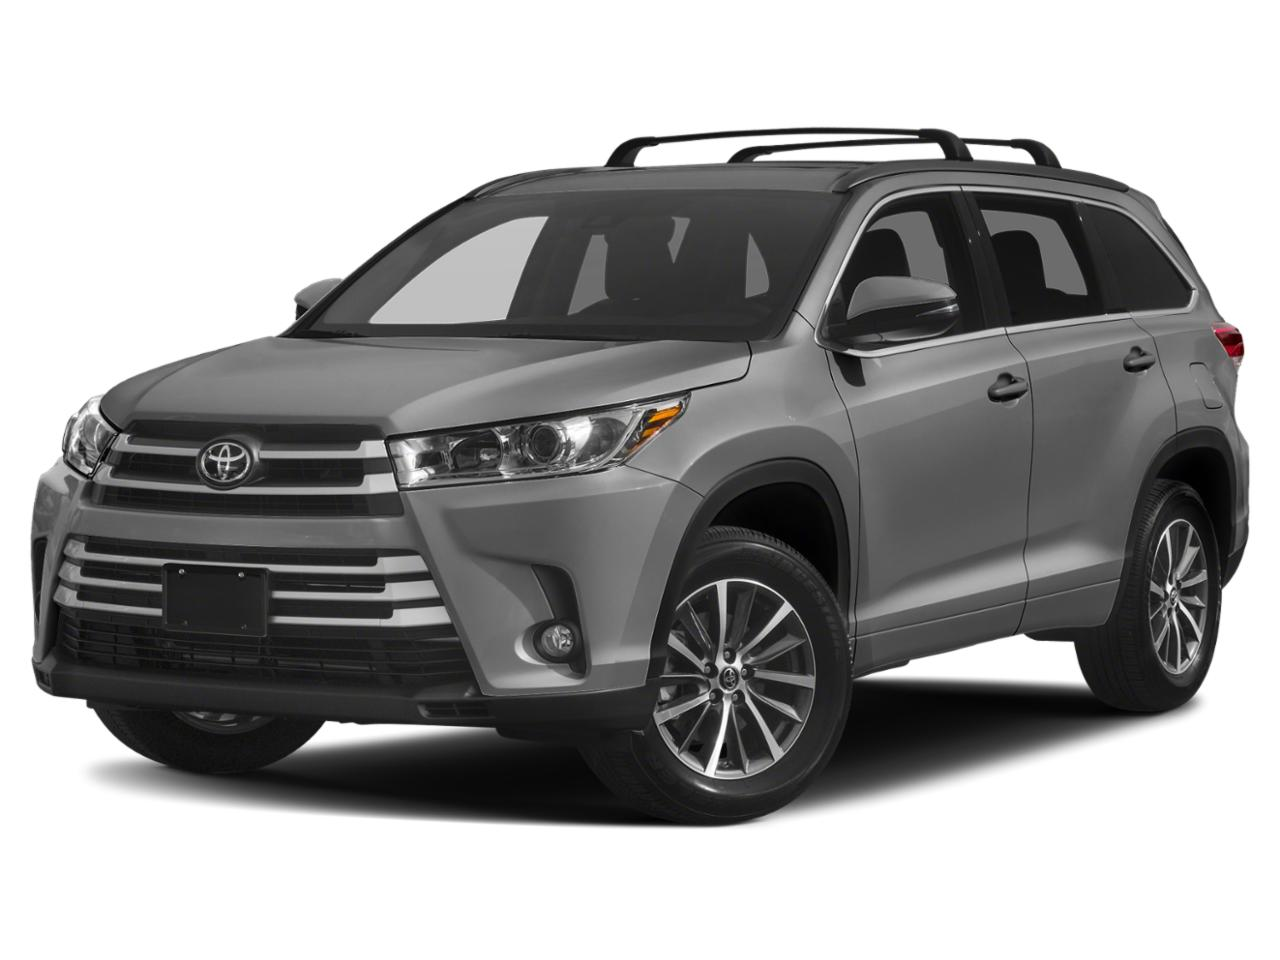 2019 Toyota Highlander Vehicle Photo in Oshkosh, WI 54904